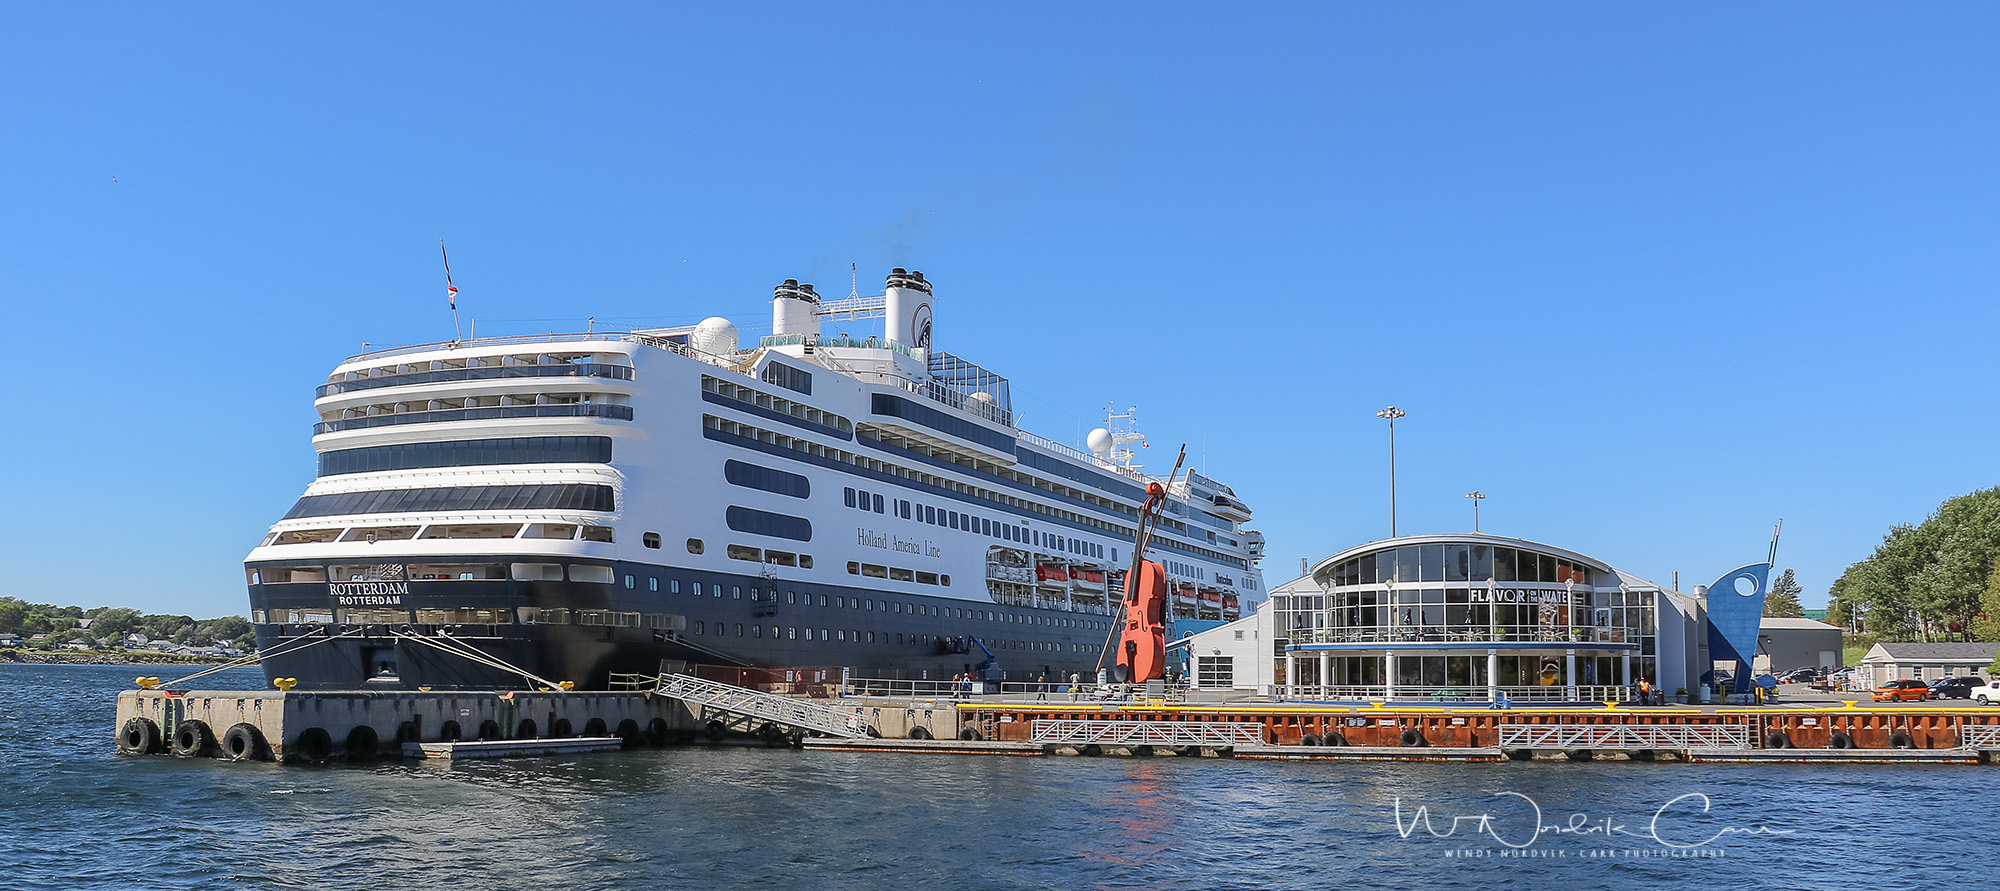 Port of Call Sydney, Nova Scotia is a popular port for cruise ships. Holland America's Rotterdam arrives in port. Photo Credit: Wendy Nordvik-Carr